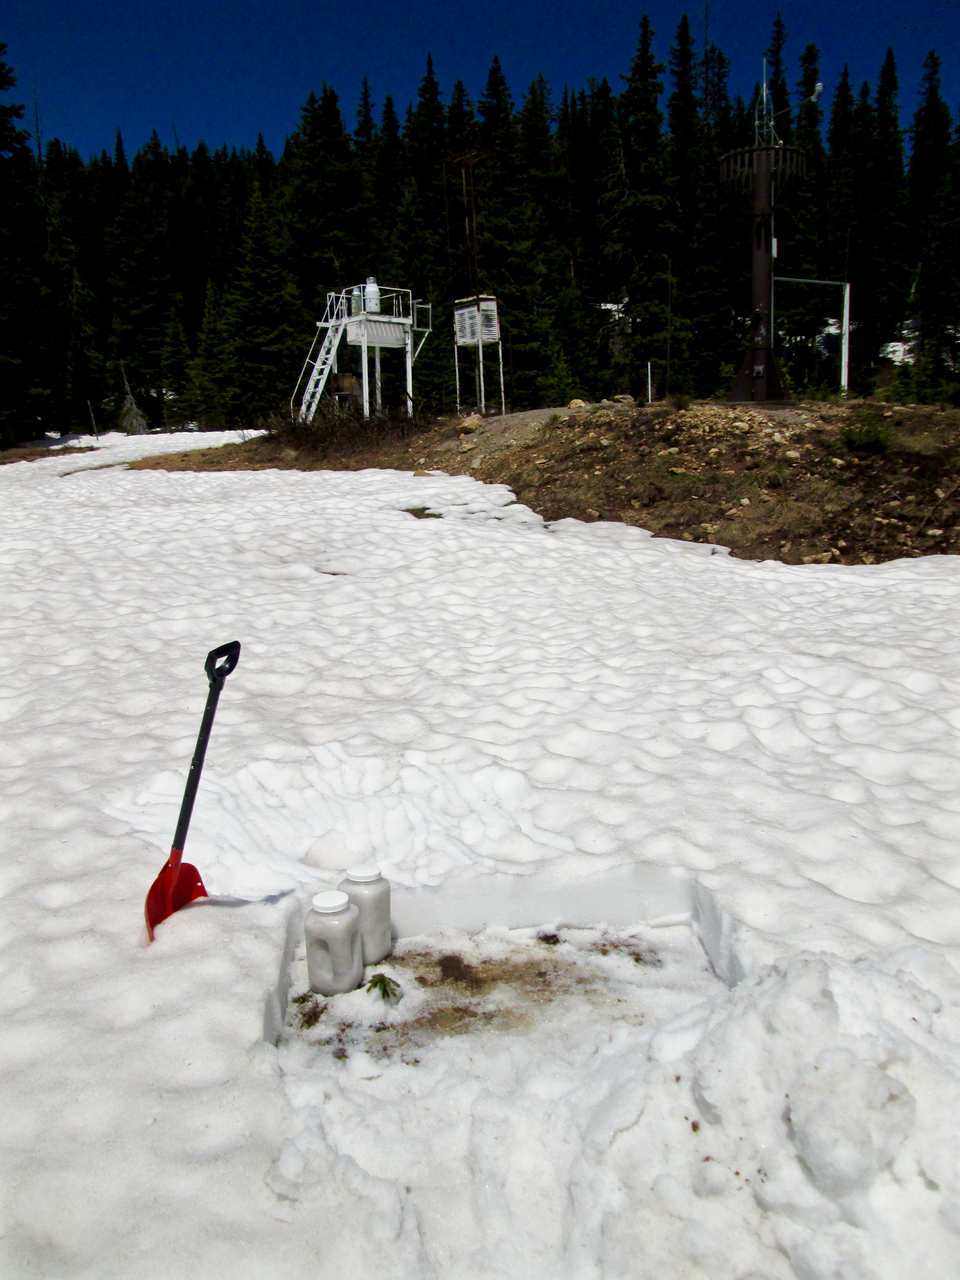 "On June 16, 2015 the Berthoud Summit CODOS snow profile site retained a few inches of sun-cupped snow.  Most of the snow pillow at the Snotel site in the background was snow-free at the time.  An ""all layers merged"" (ALM) sample consisting of at least dust layer D3 and potentially layers D2 and D1 was collected from the rough snow surface immediately to the right of the shovel, with minimal quantities of vegetation debris."